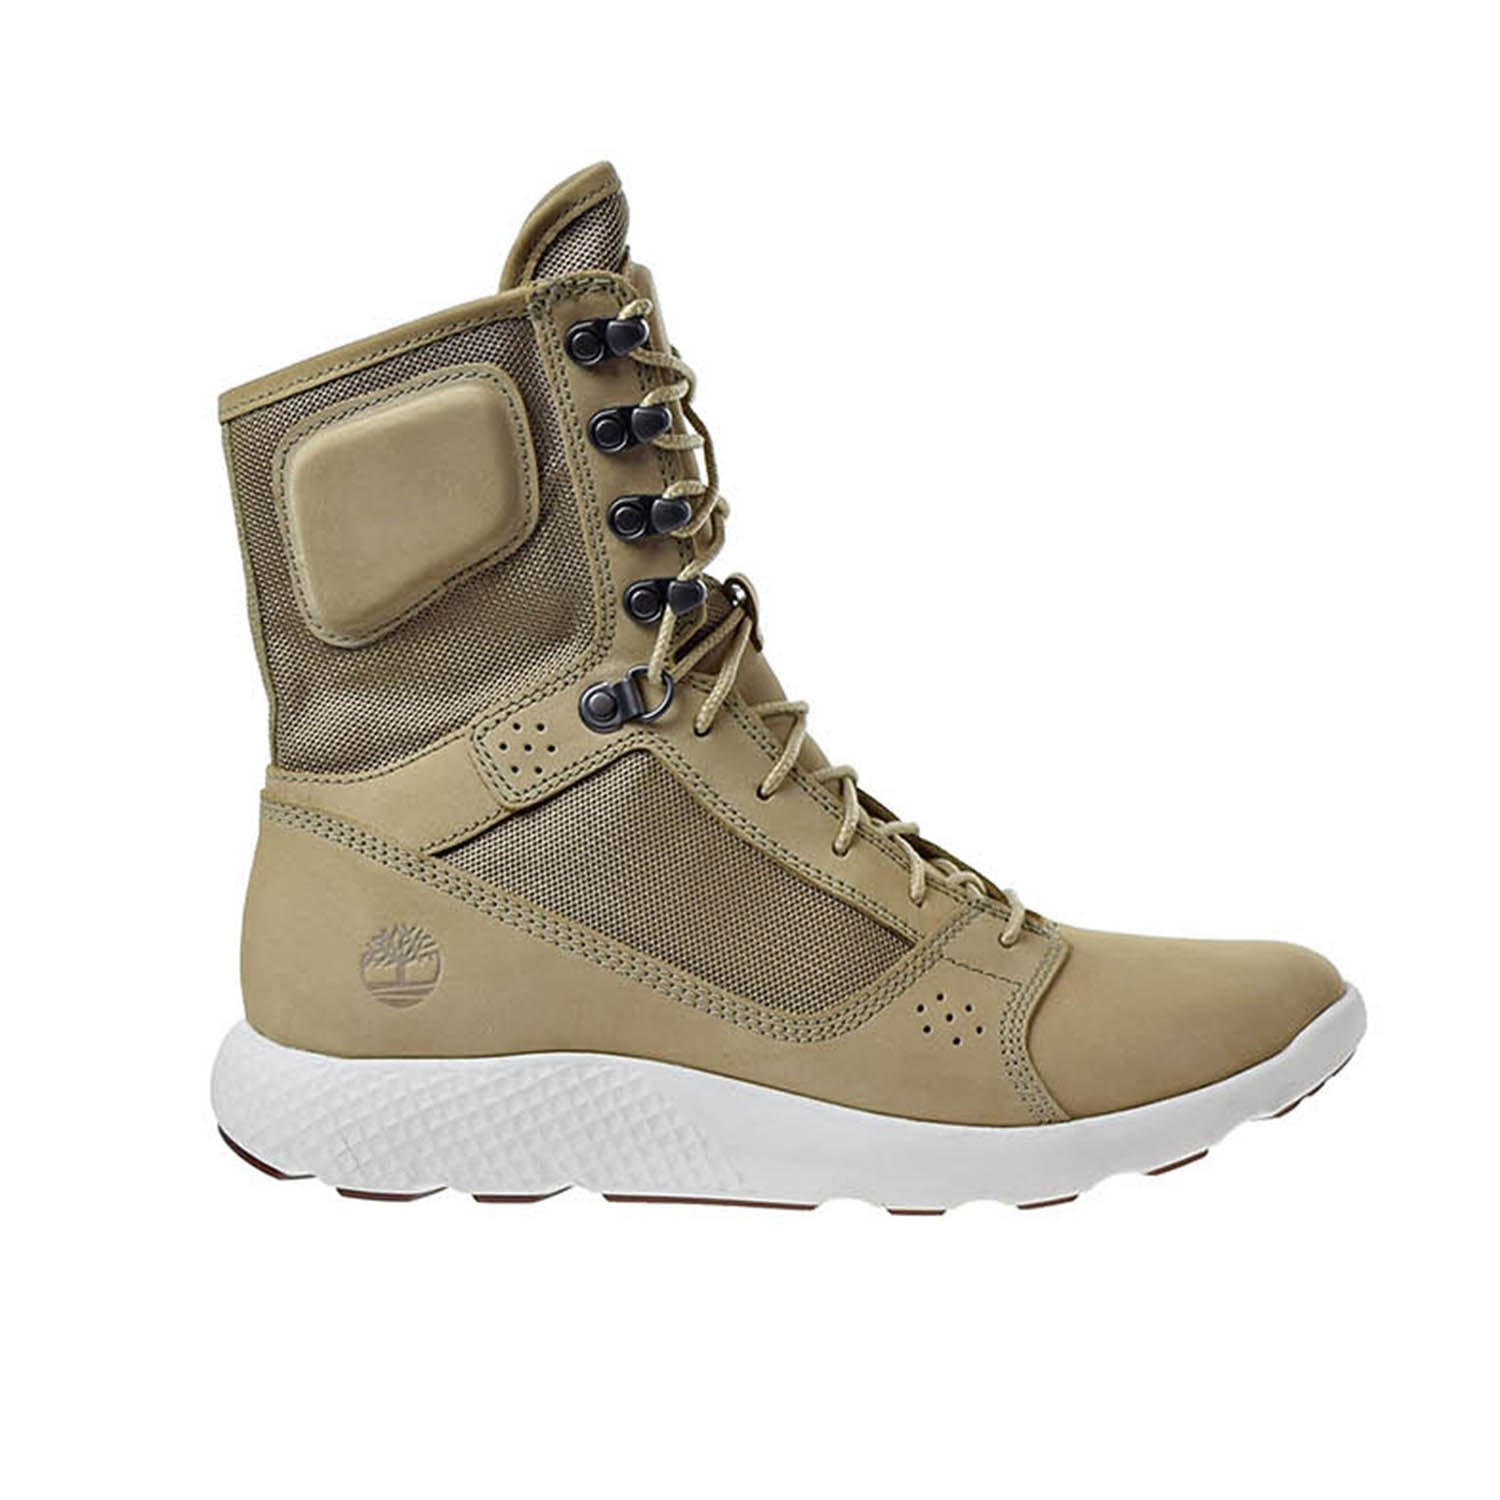 e16a5daed0e Timberland Limited Release Flyroam Tactical Leather Men's Boots ...